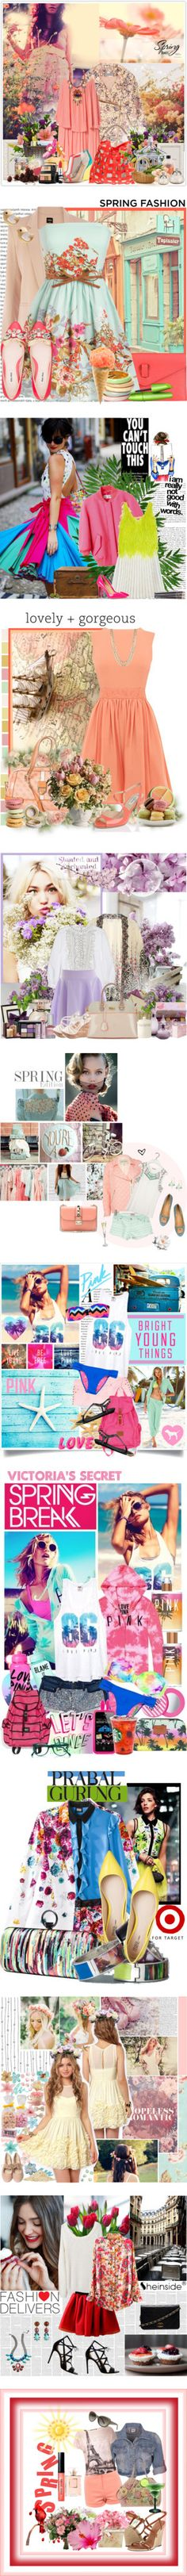 """SPRING ♥"" by jennie2104 ❤ liked on Polyvore"